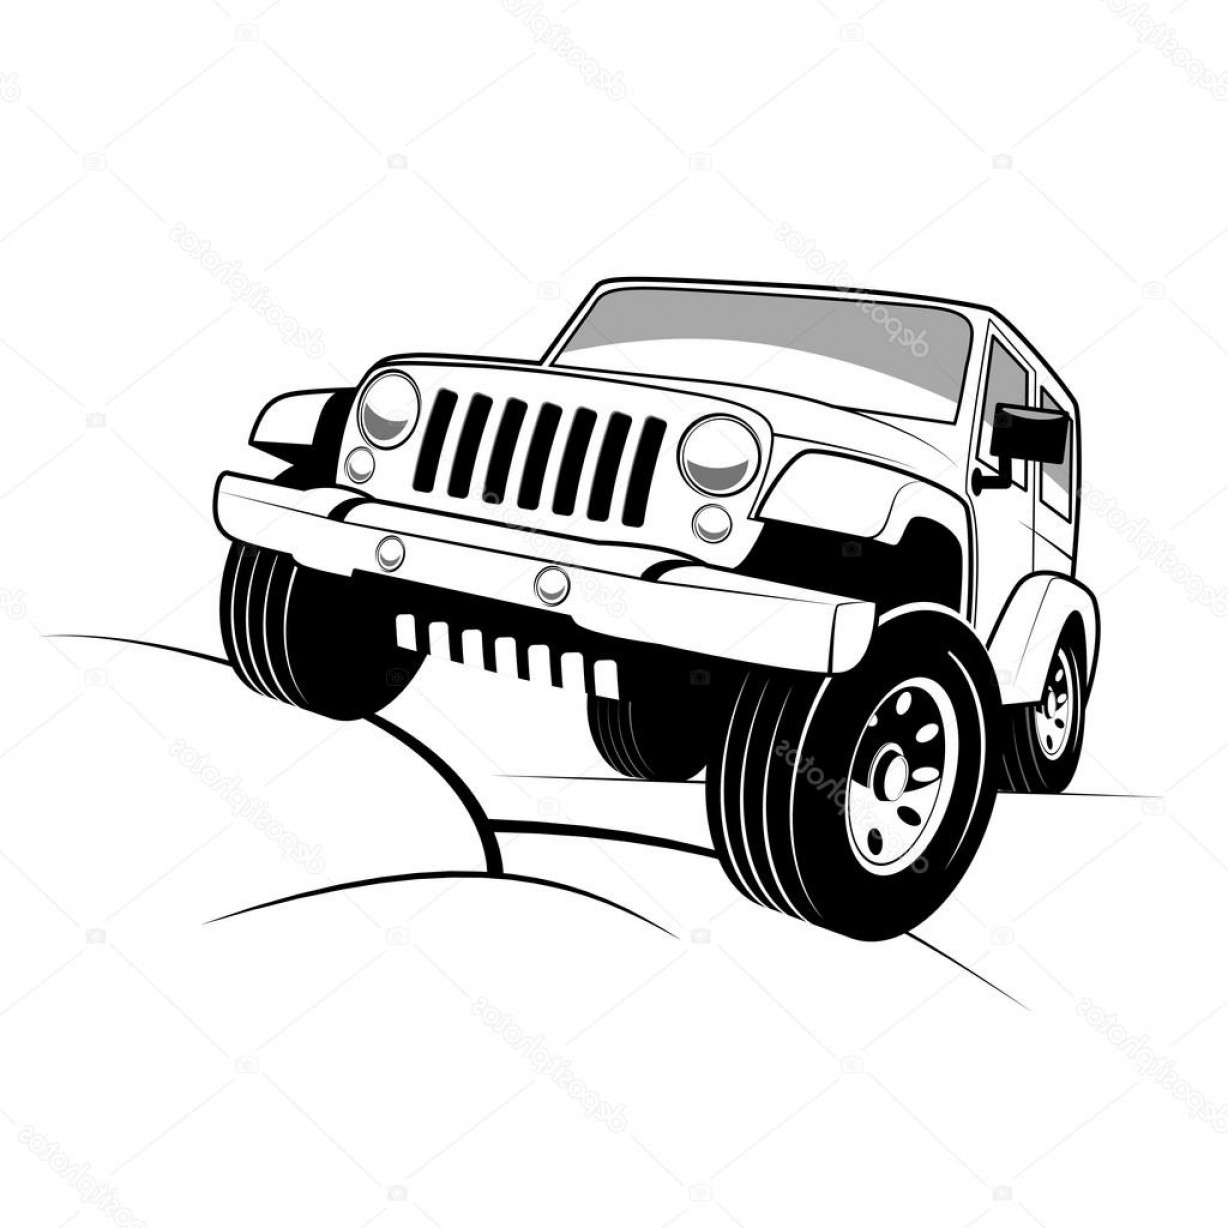 Jeep Off-Road Vector Art: Stock Illustration Monochrome Detailed Cartoon Off Road